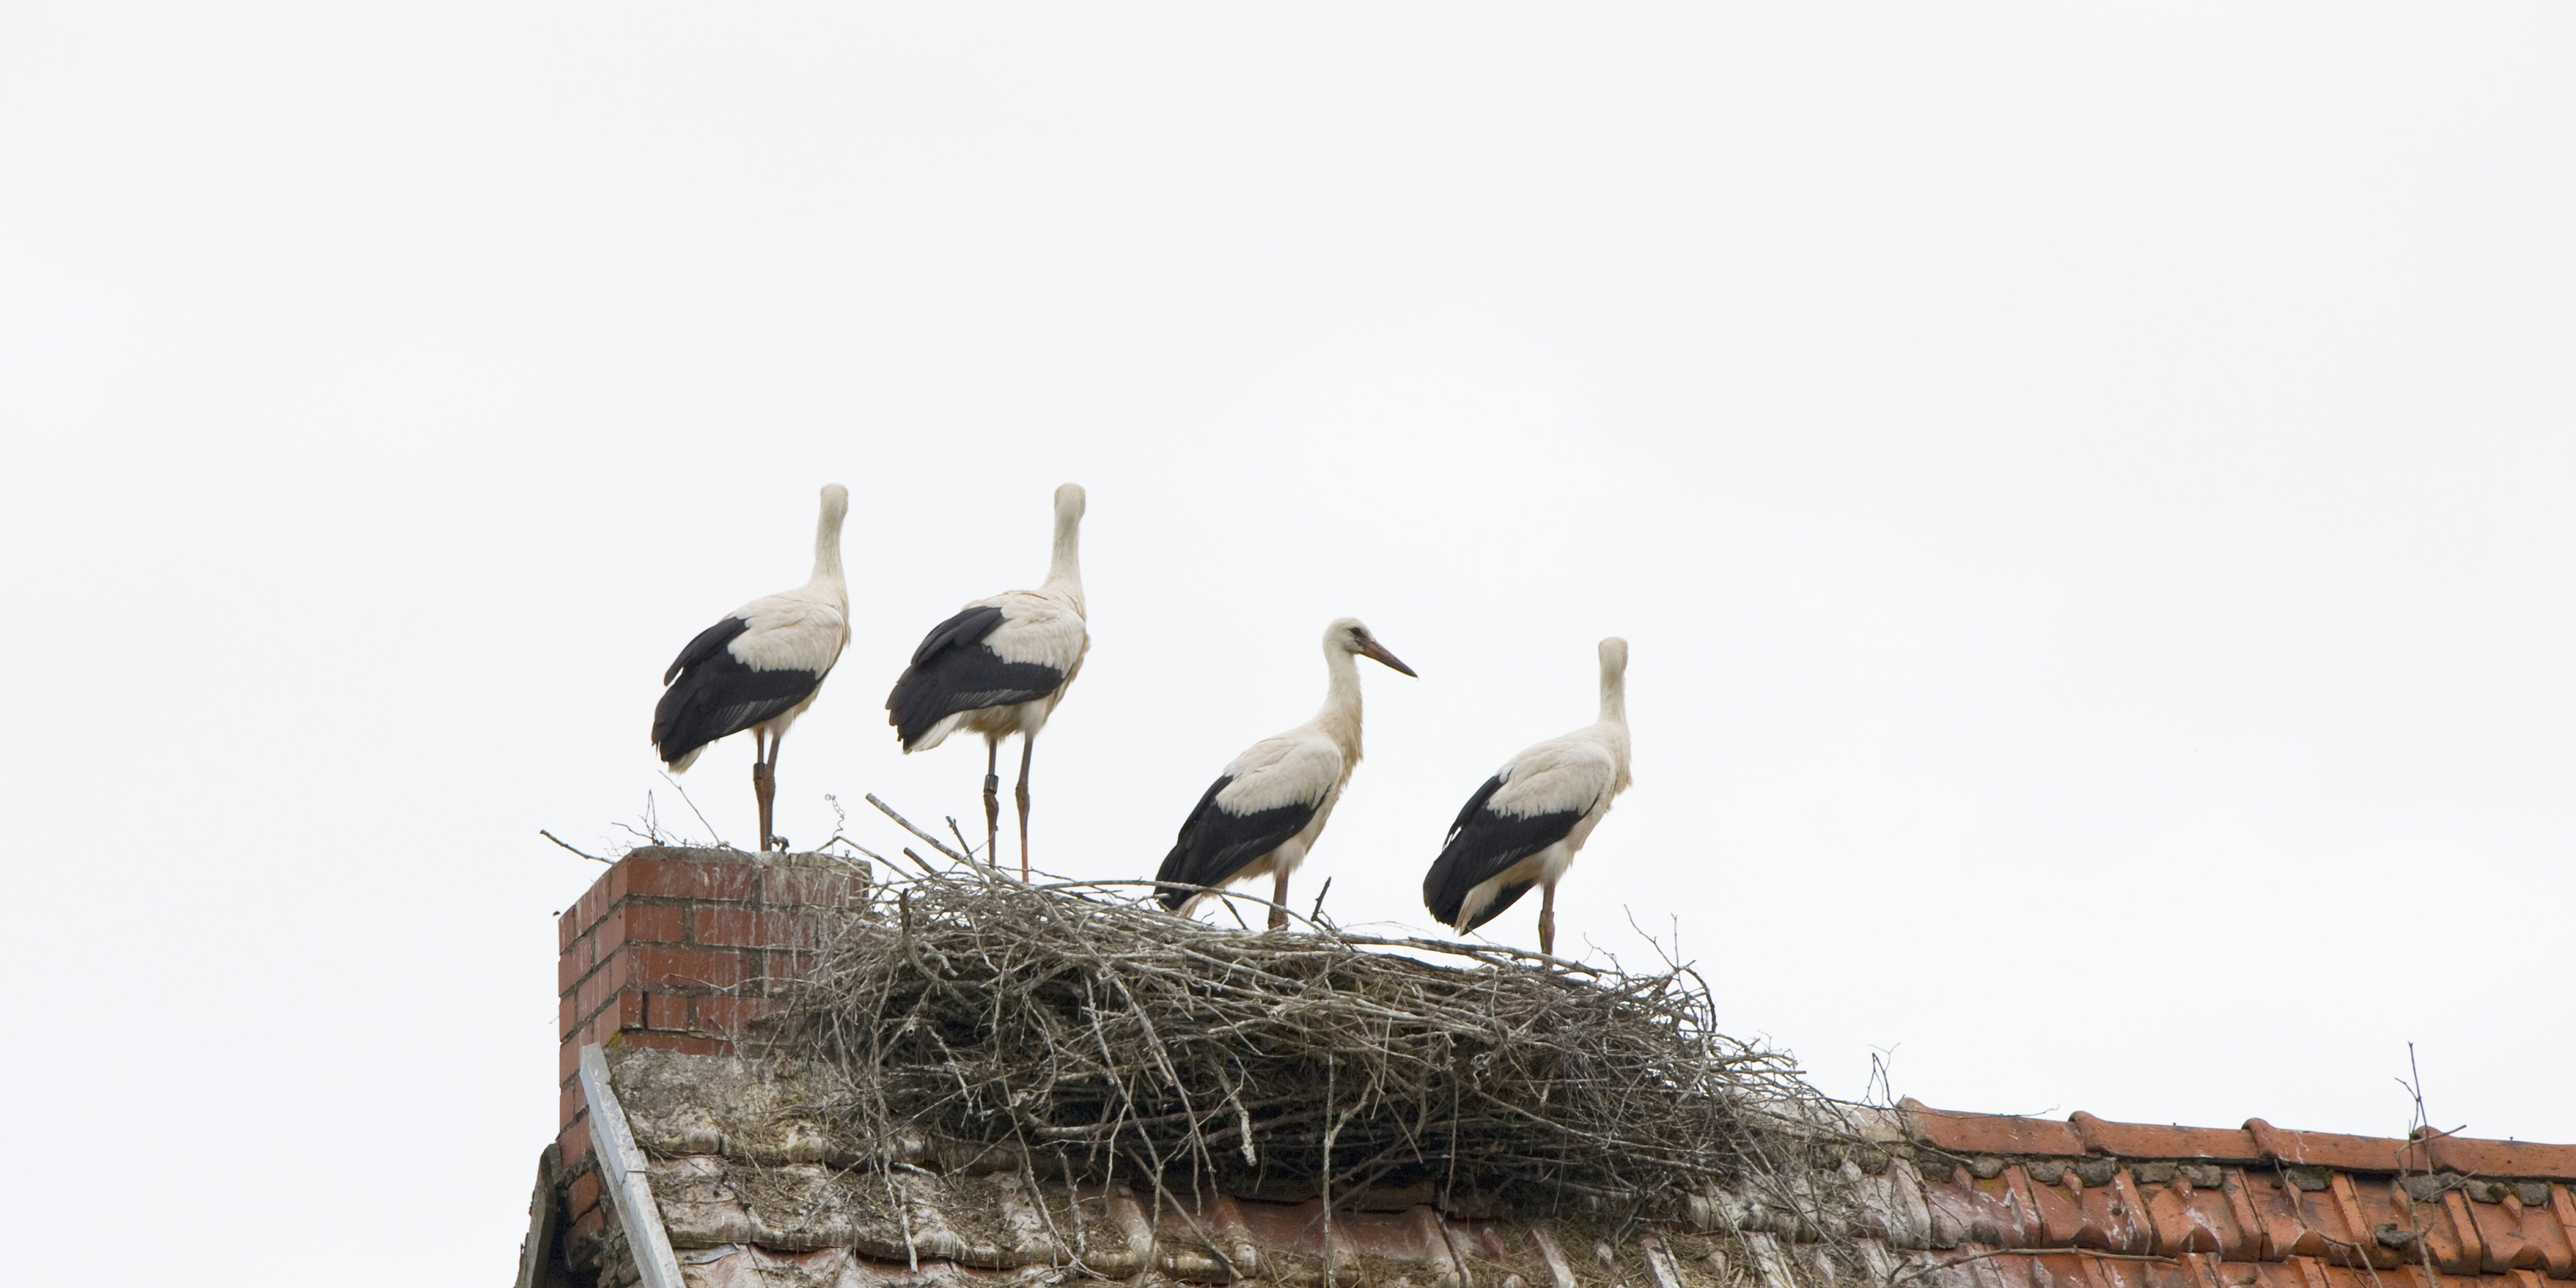 Young Storks II, DE ©Johannes Ratermann